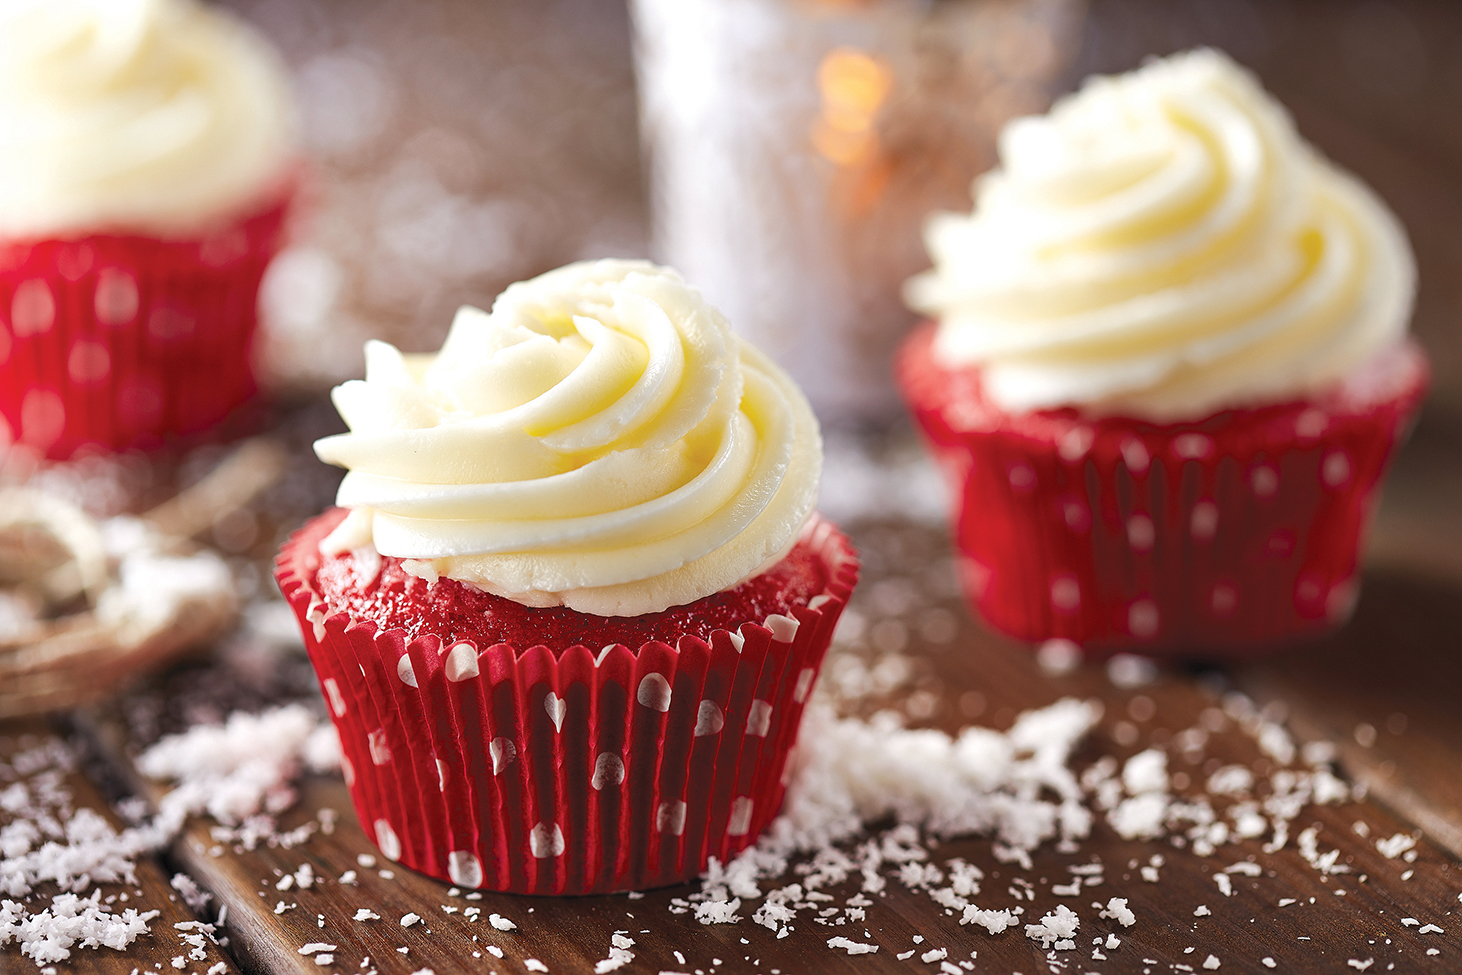 Red velvet cupcakes on wooden table